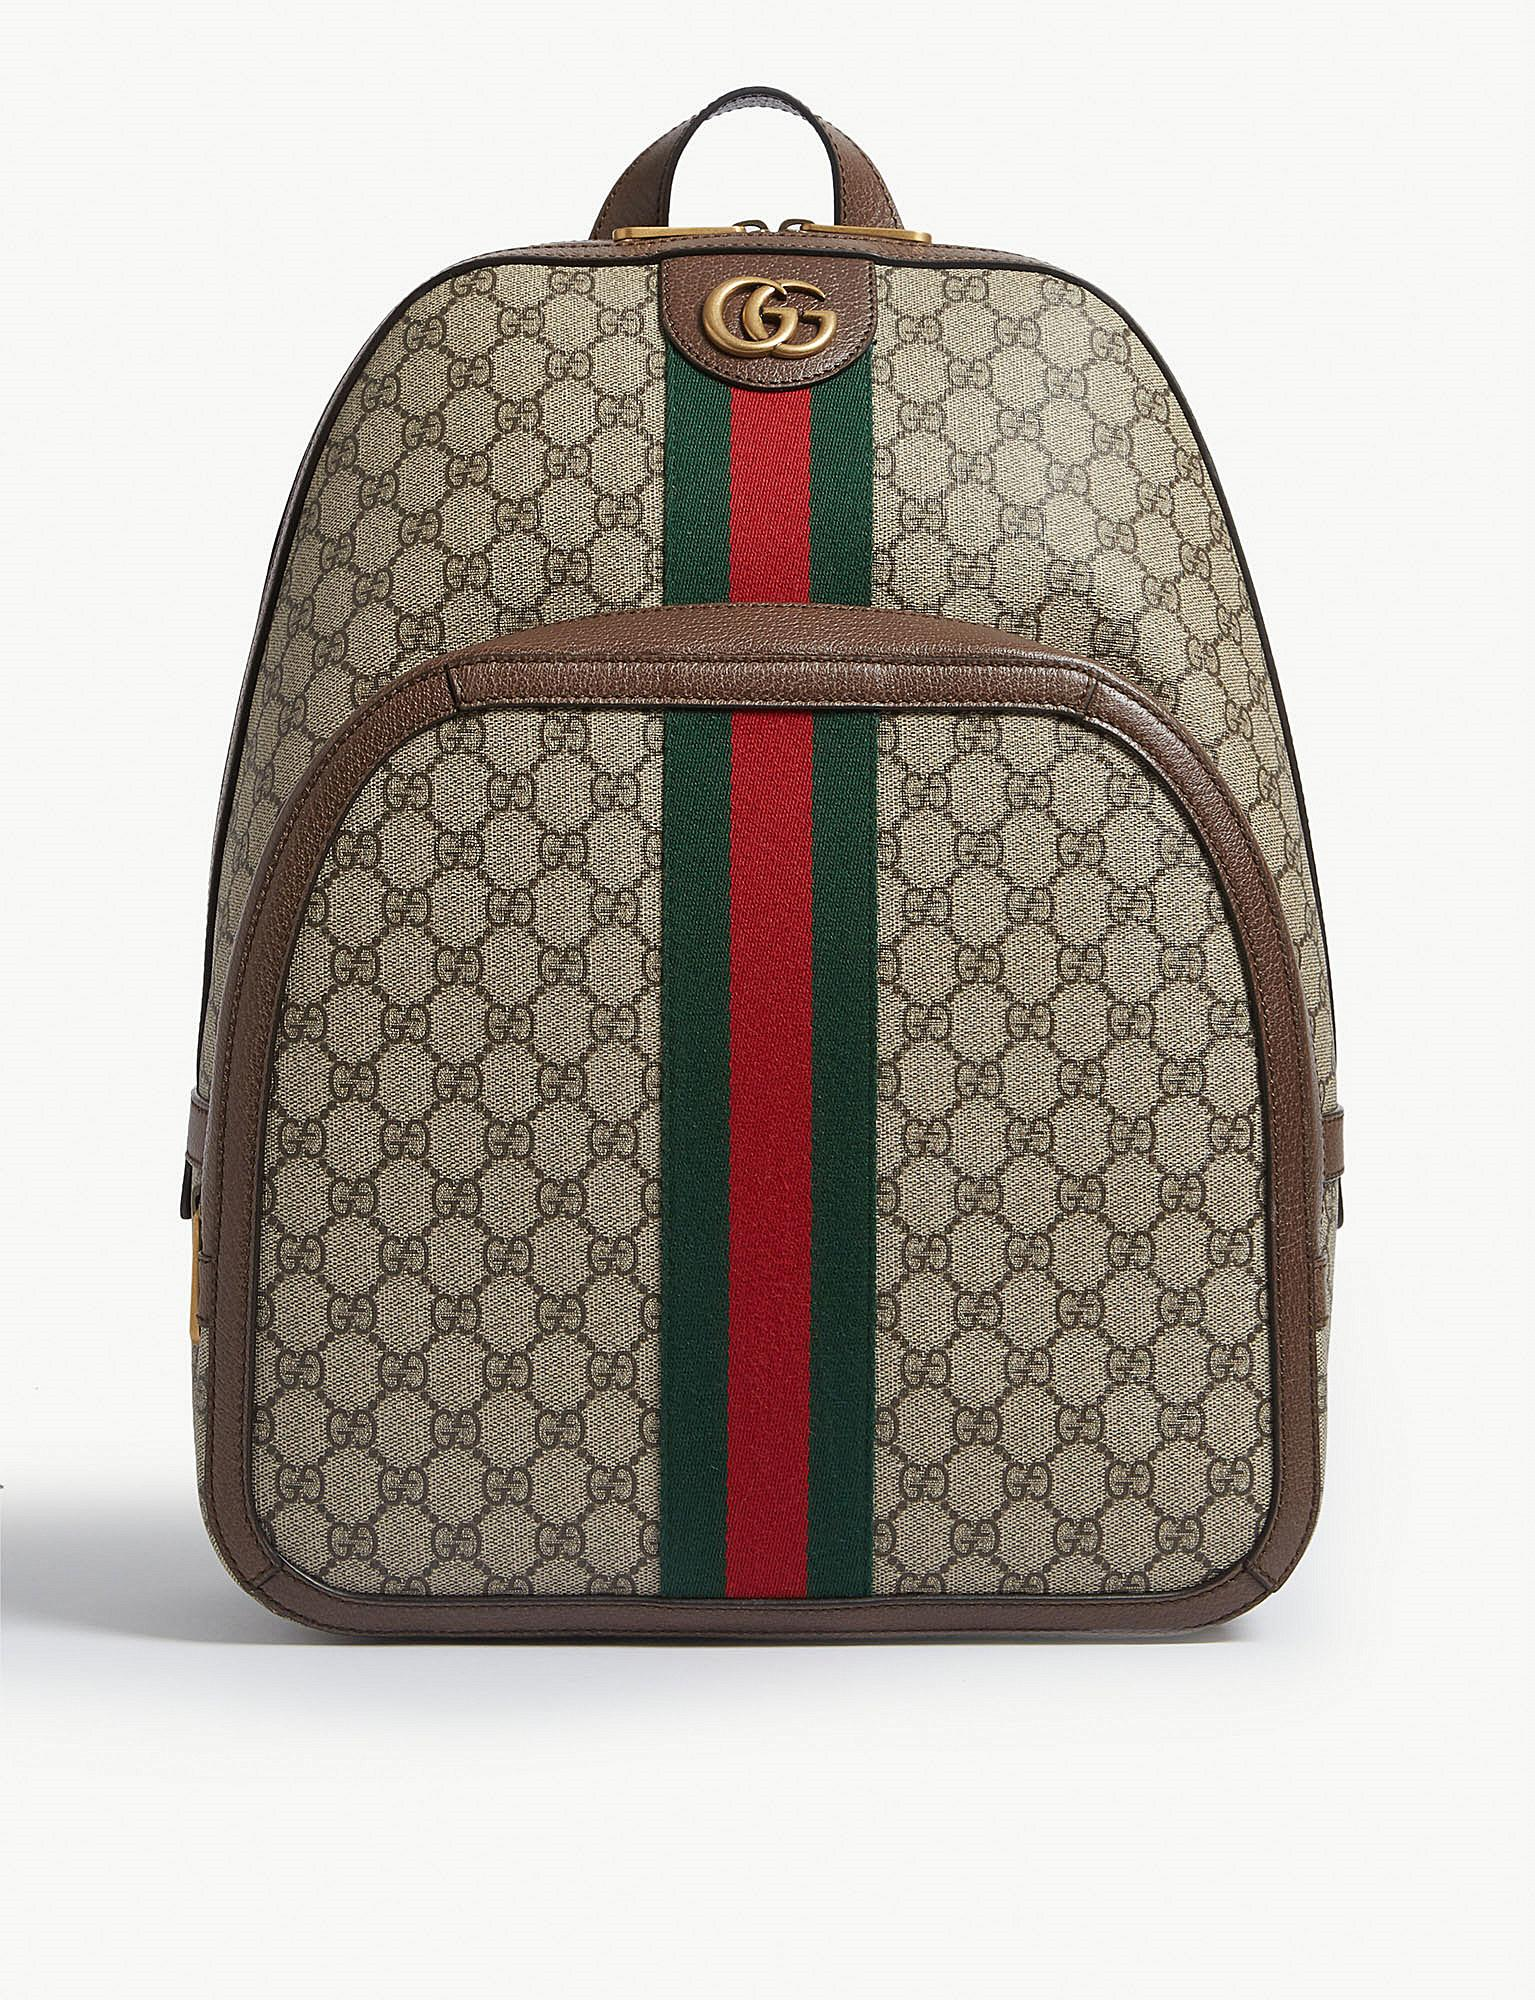 8c1e69f64cac Lyst - Gucci Beige Medium GG Ophidia Backpack in Natural for Men ...